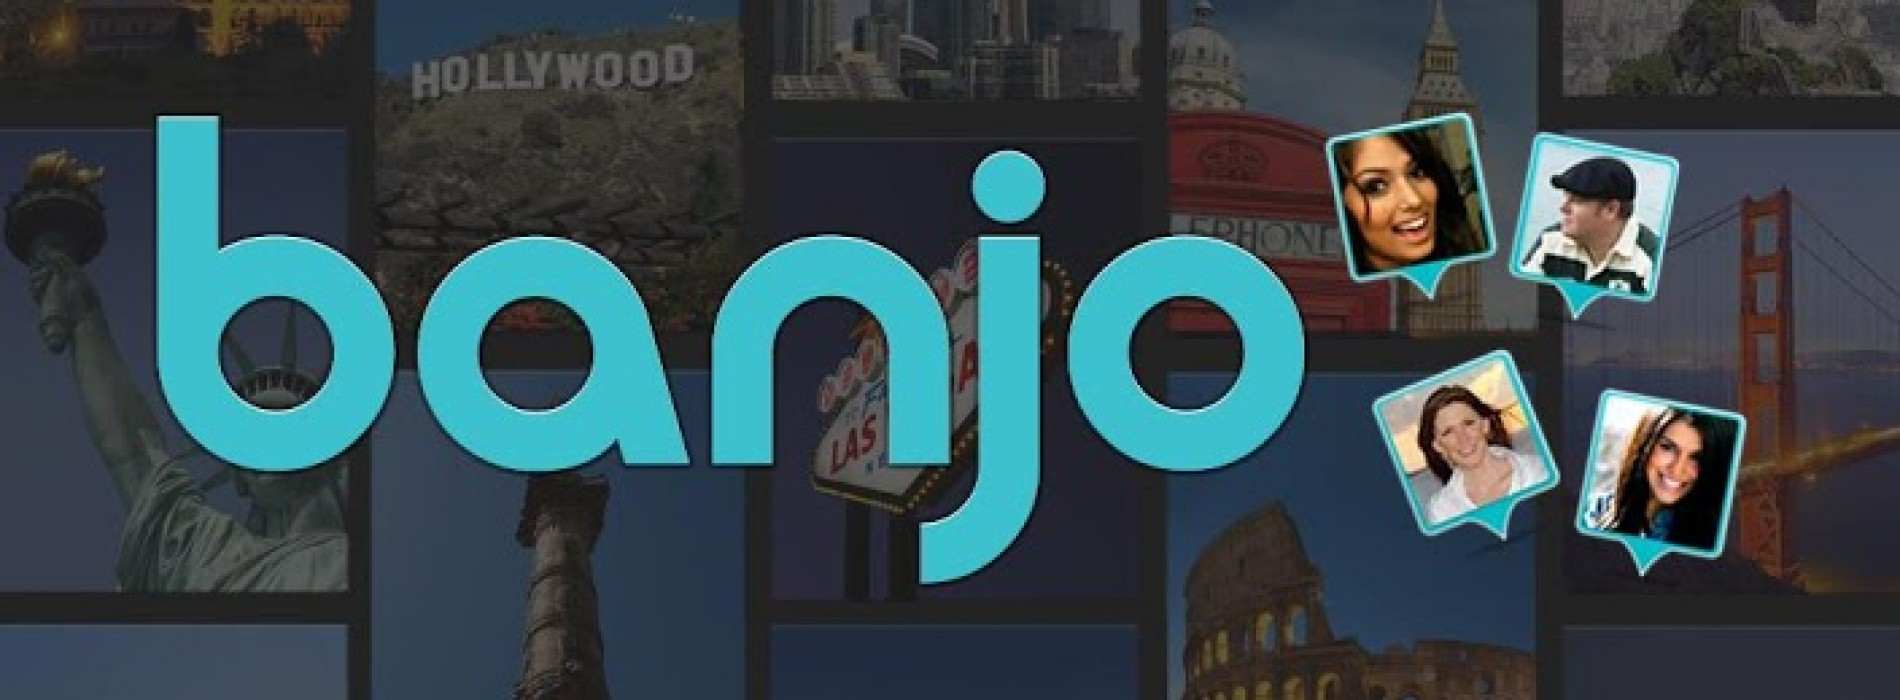 Banjo 3.0 brings location-based social media and networking to a new level